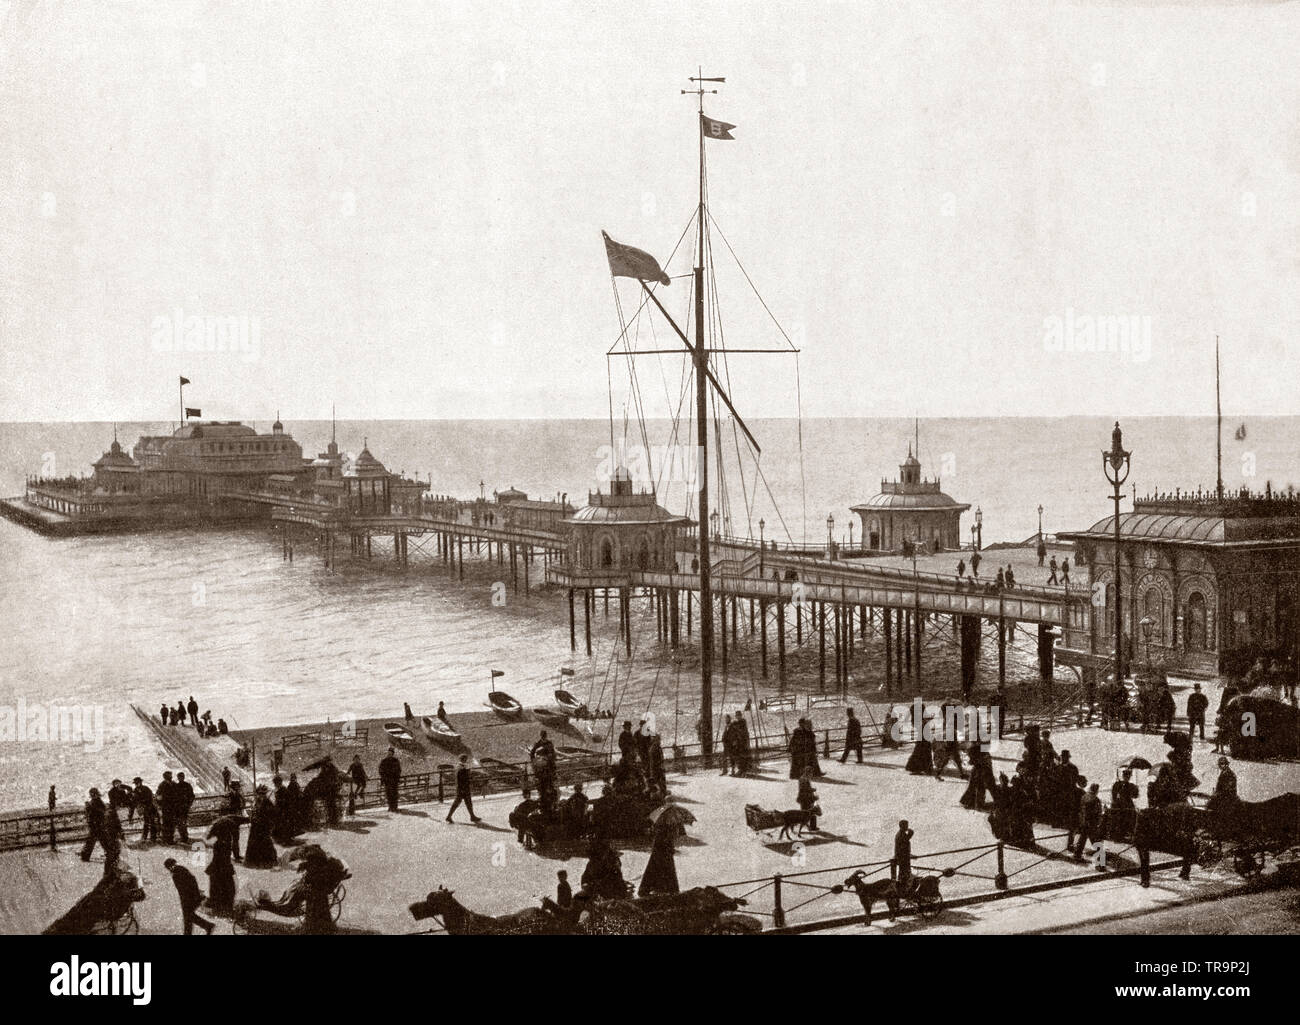 A 19th Century view of the West Pier in Brighton, East Sussex, England. It was designed by Eugenius Birch and opened in 1866 during the boom in pleasure pier building in the 1860s, and was designed to attract tourists to Brighton. - Stock Image